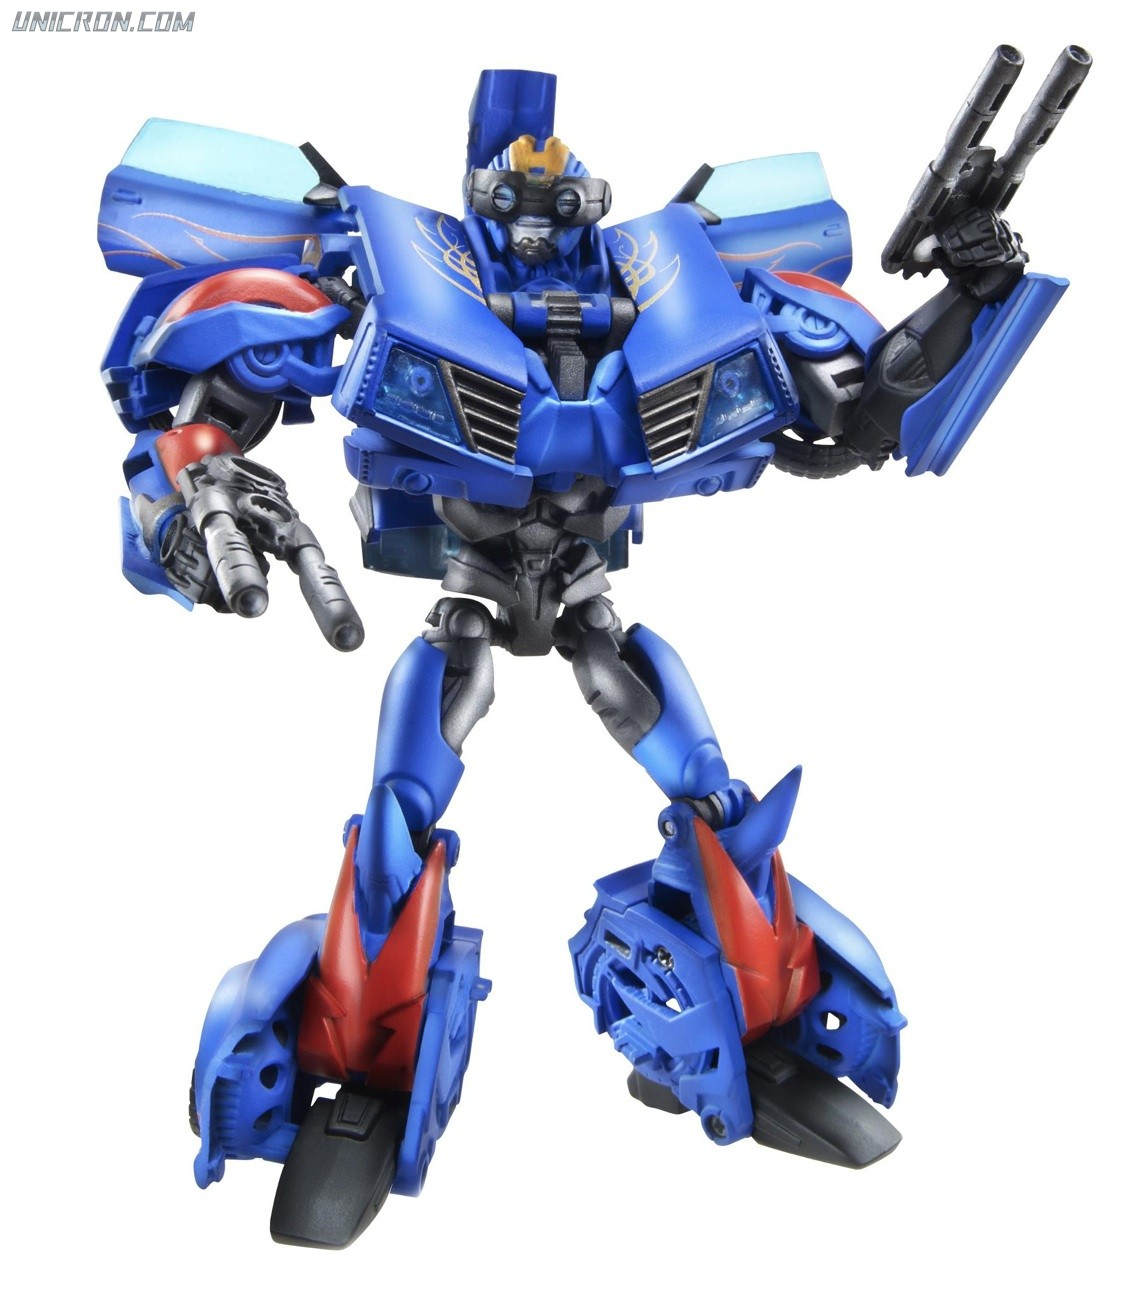 Transformers Prime Hot Shot toy